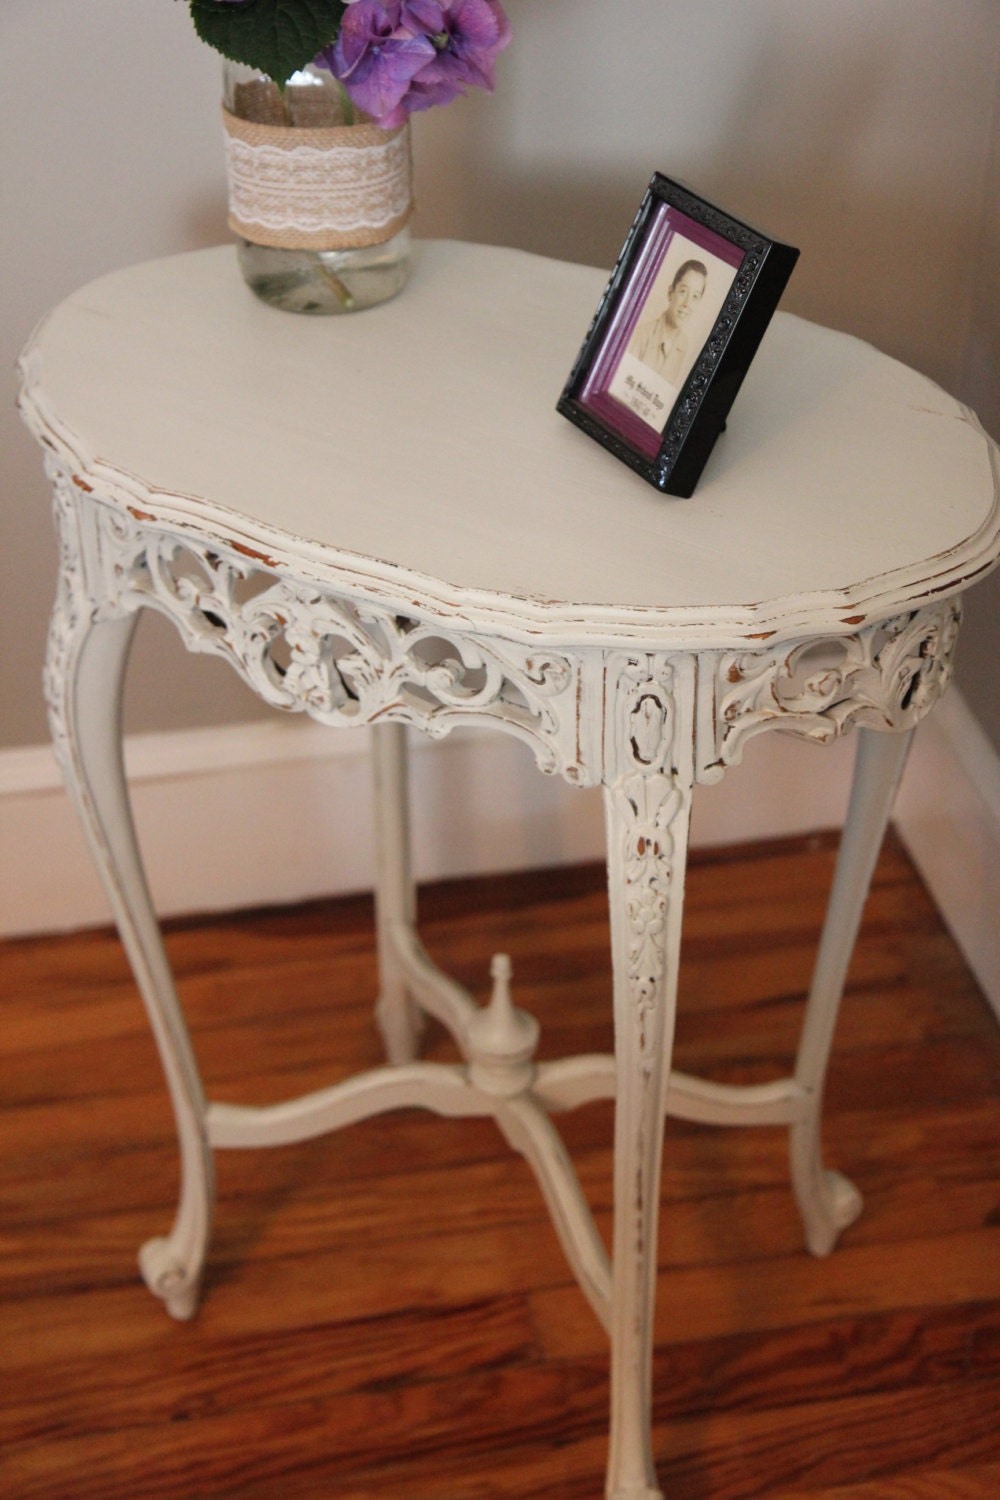 Ornate vintage shabby chic side table - Table basse shabby chic ...